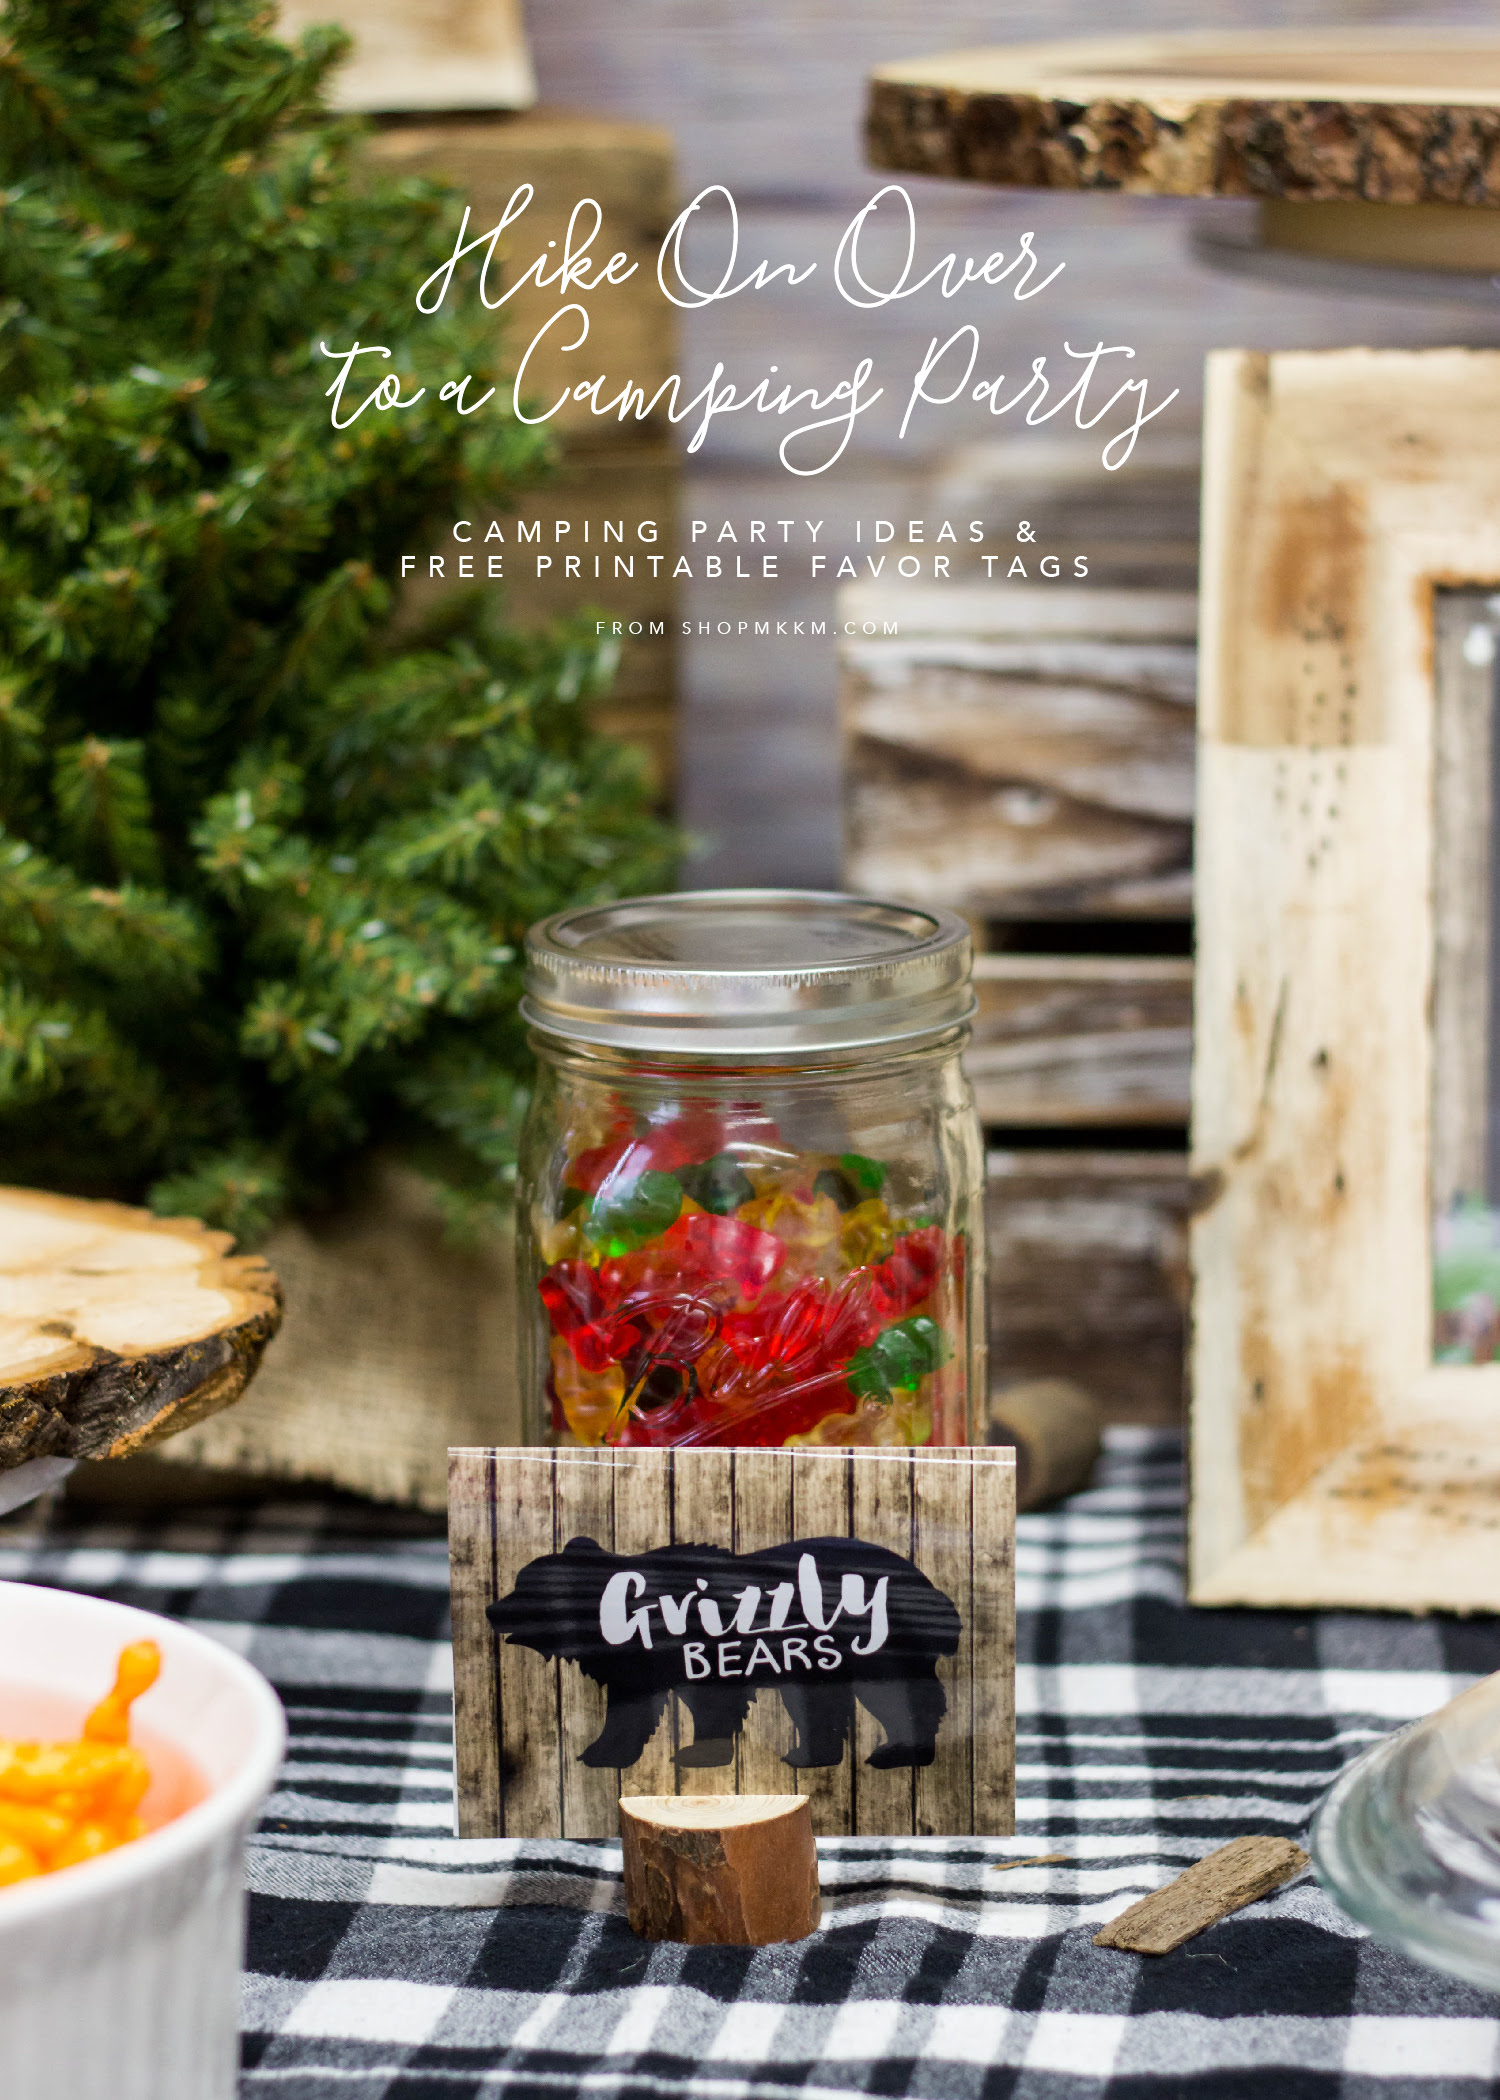 Hike On Over Camping Party Planning And Free Printable Mkkm Designs